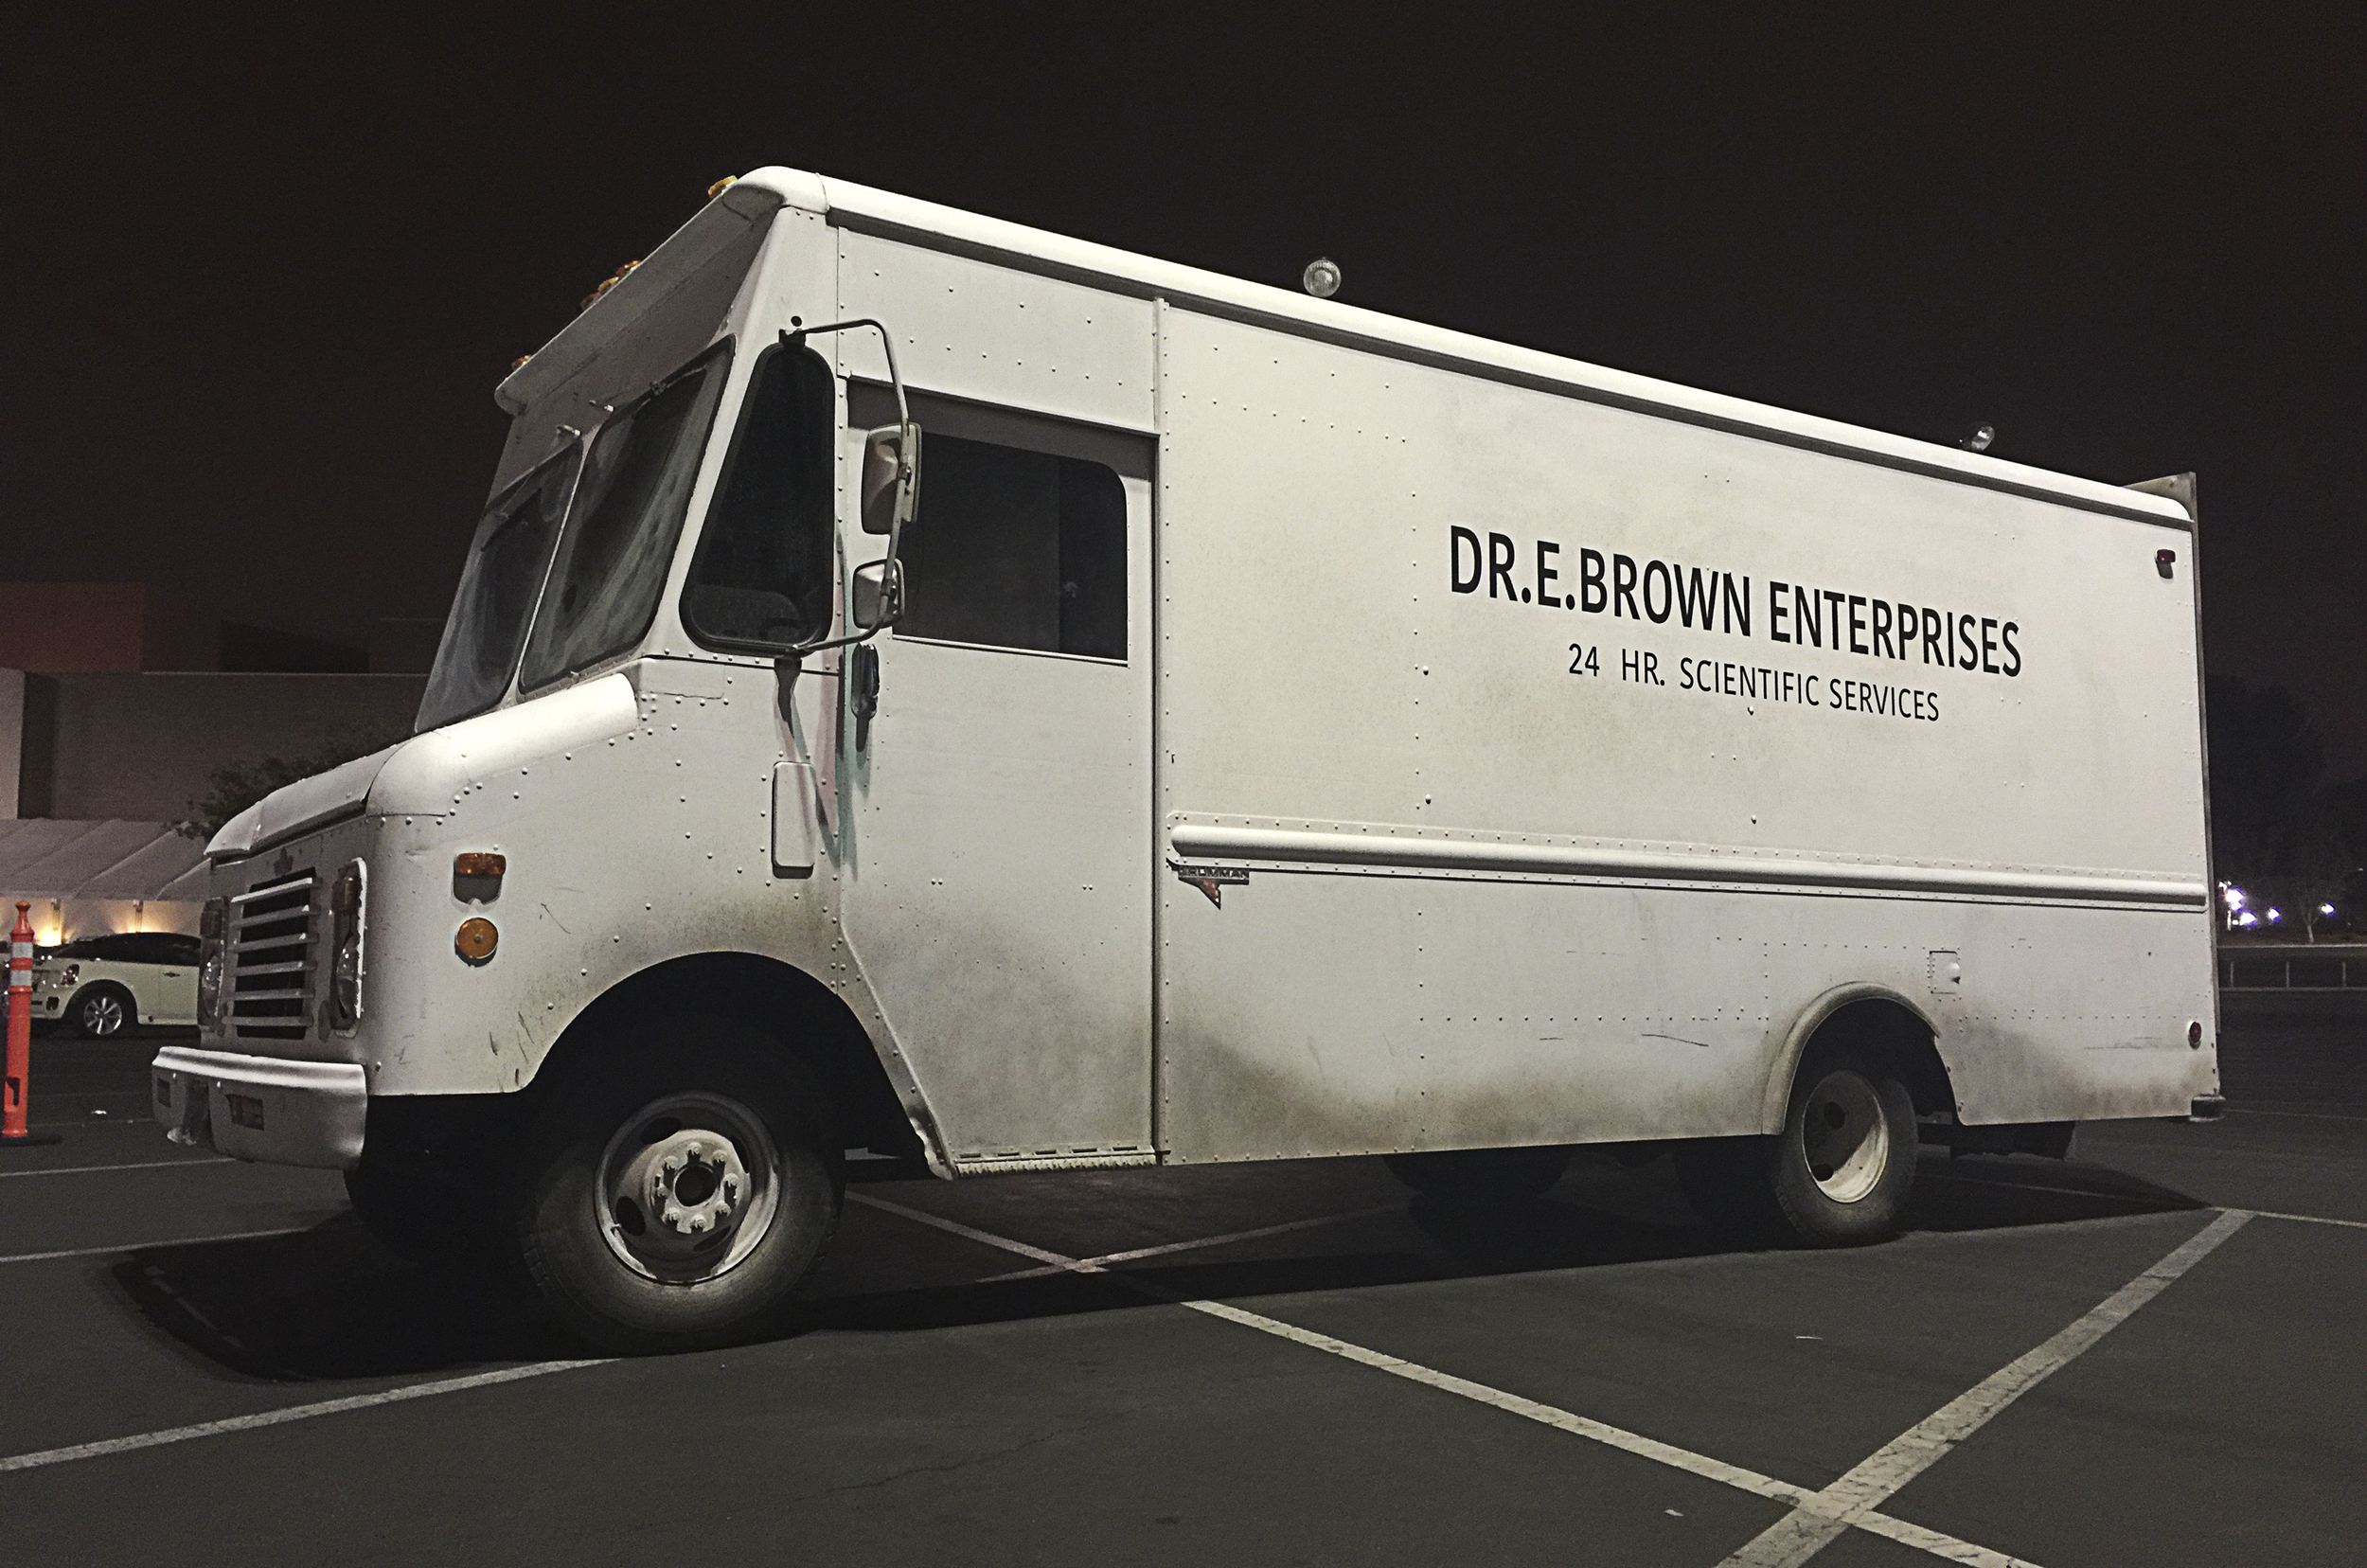 While Doc's van may look very simple... The amount of detail in this thing is pretty amazing.